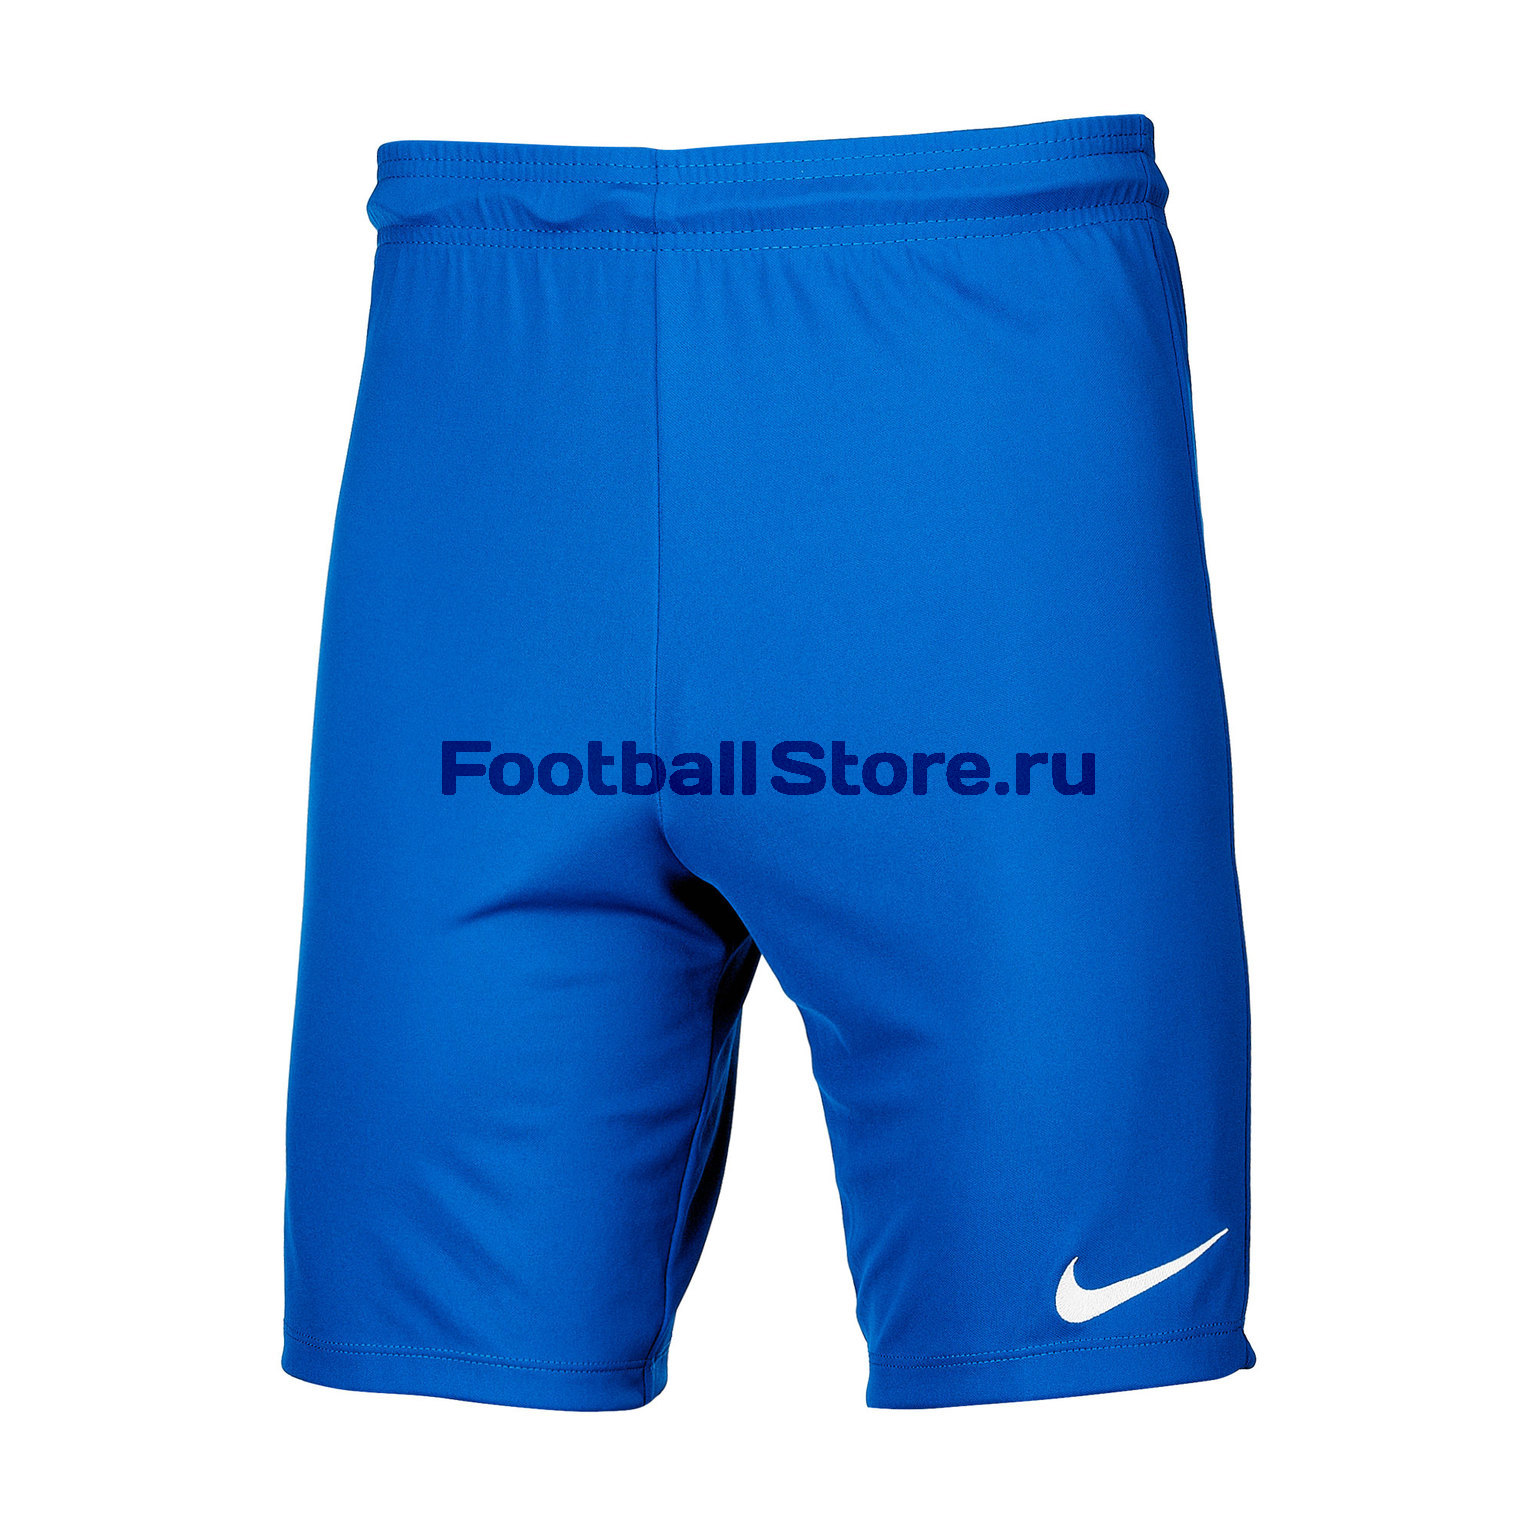 Шорты Nike Park II KNIT Short NB 725887-463 шорты nike park knit short wb 448222 739